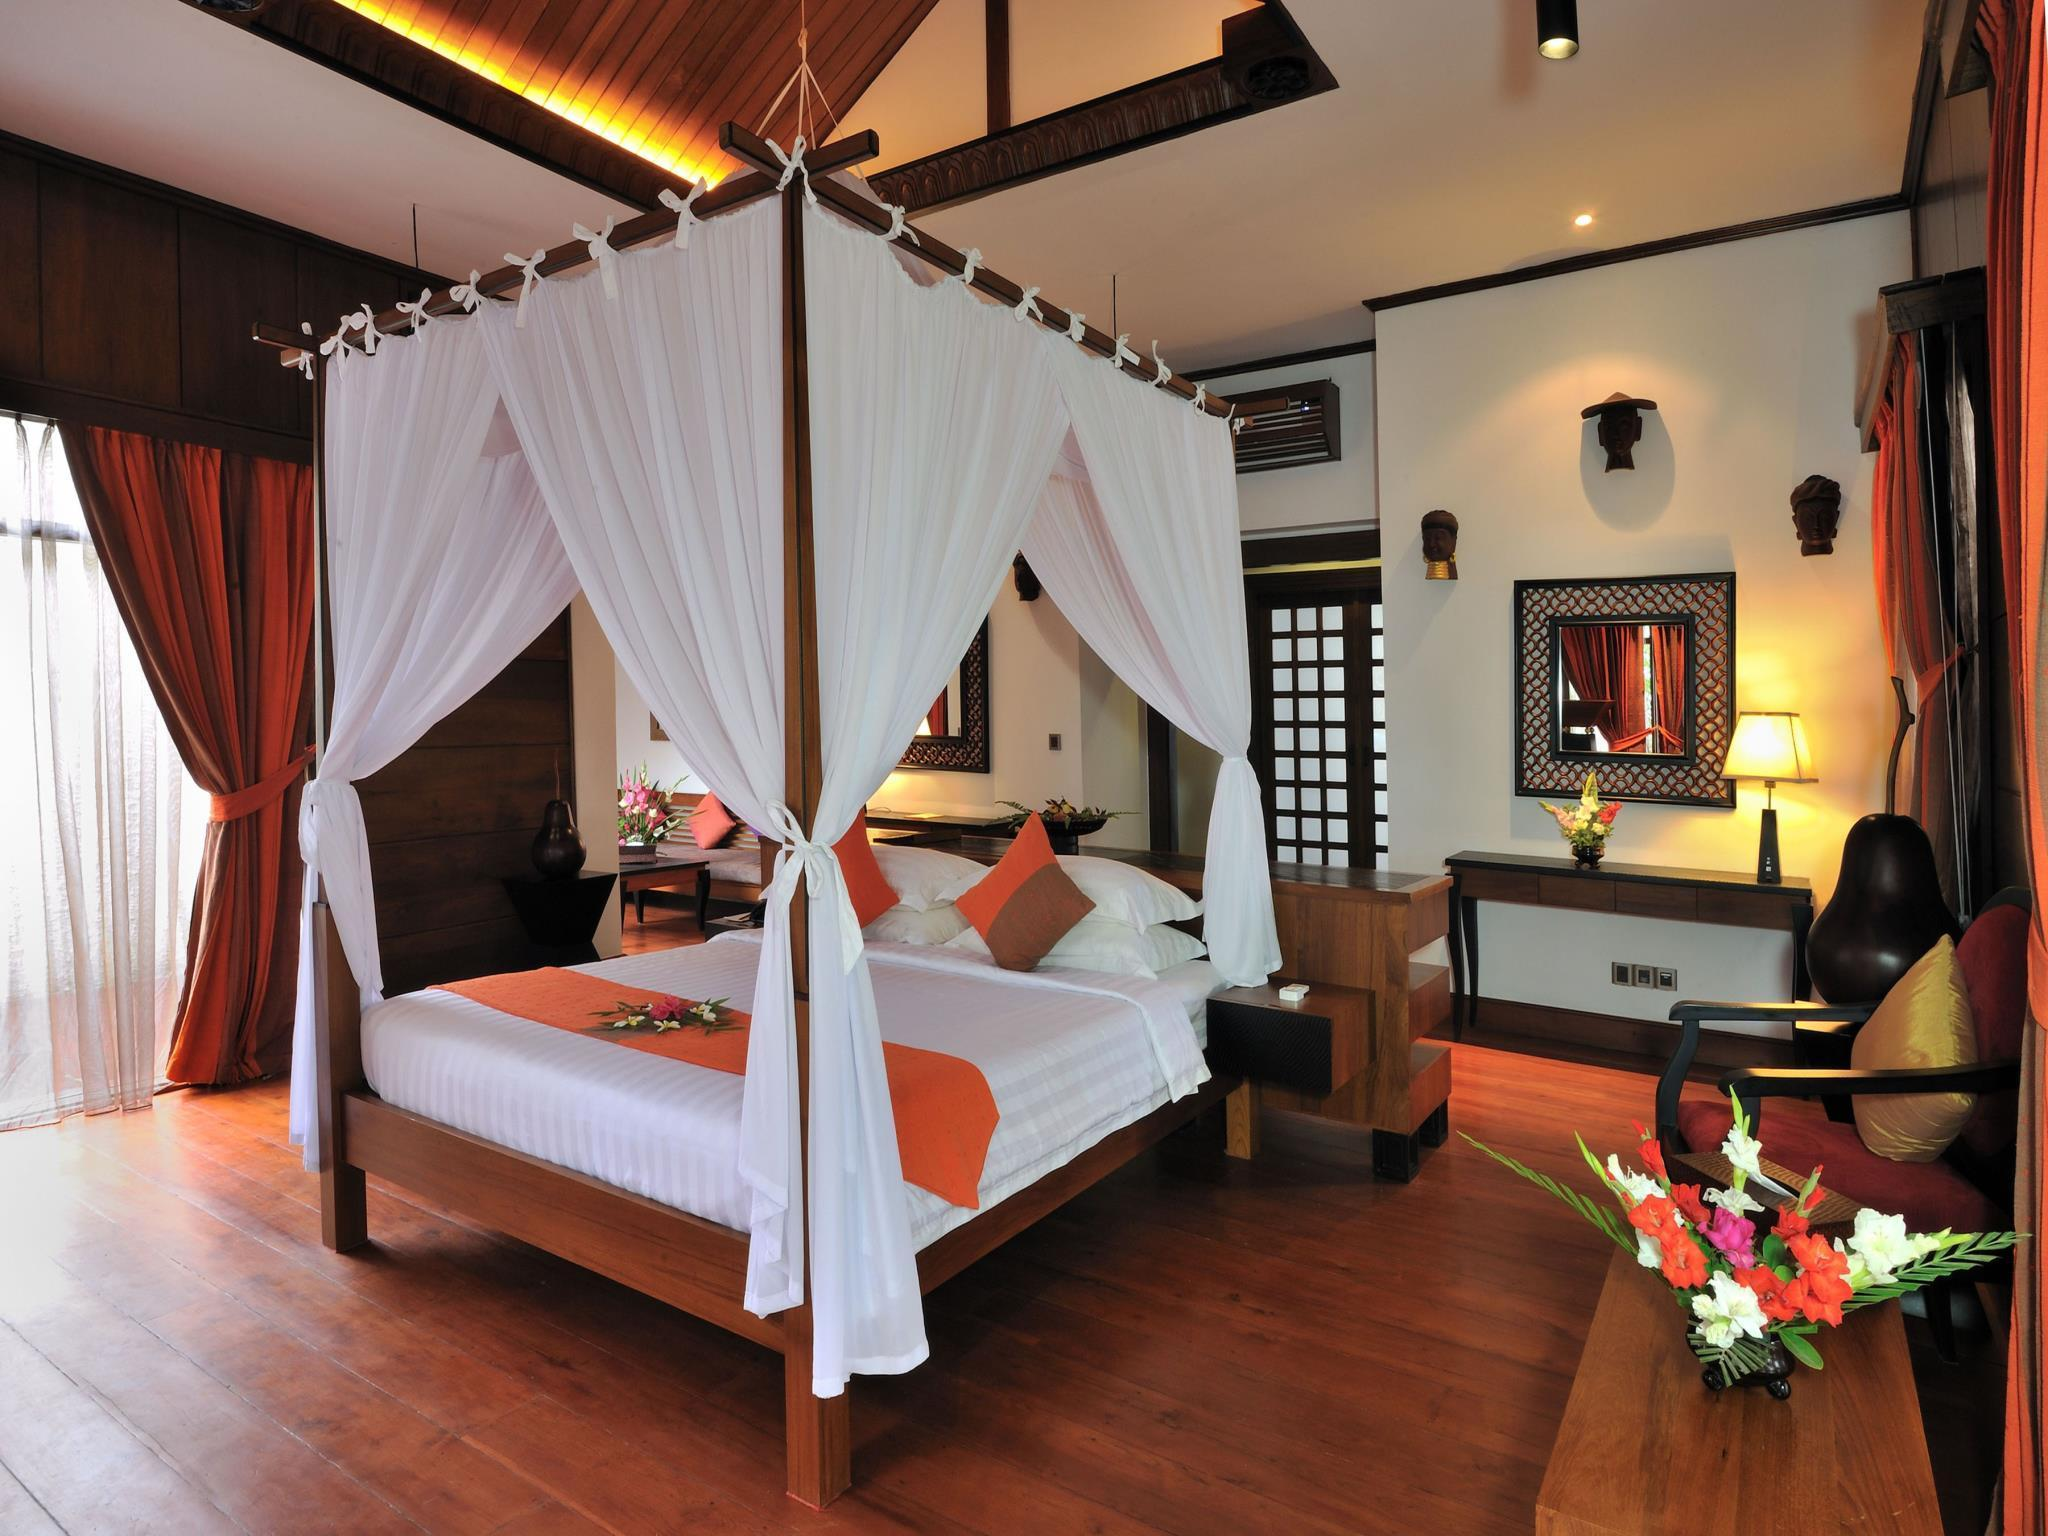 Villa on the Shore with Double Bed